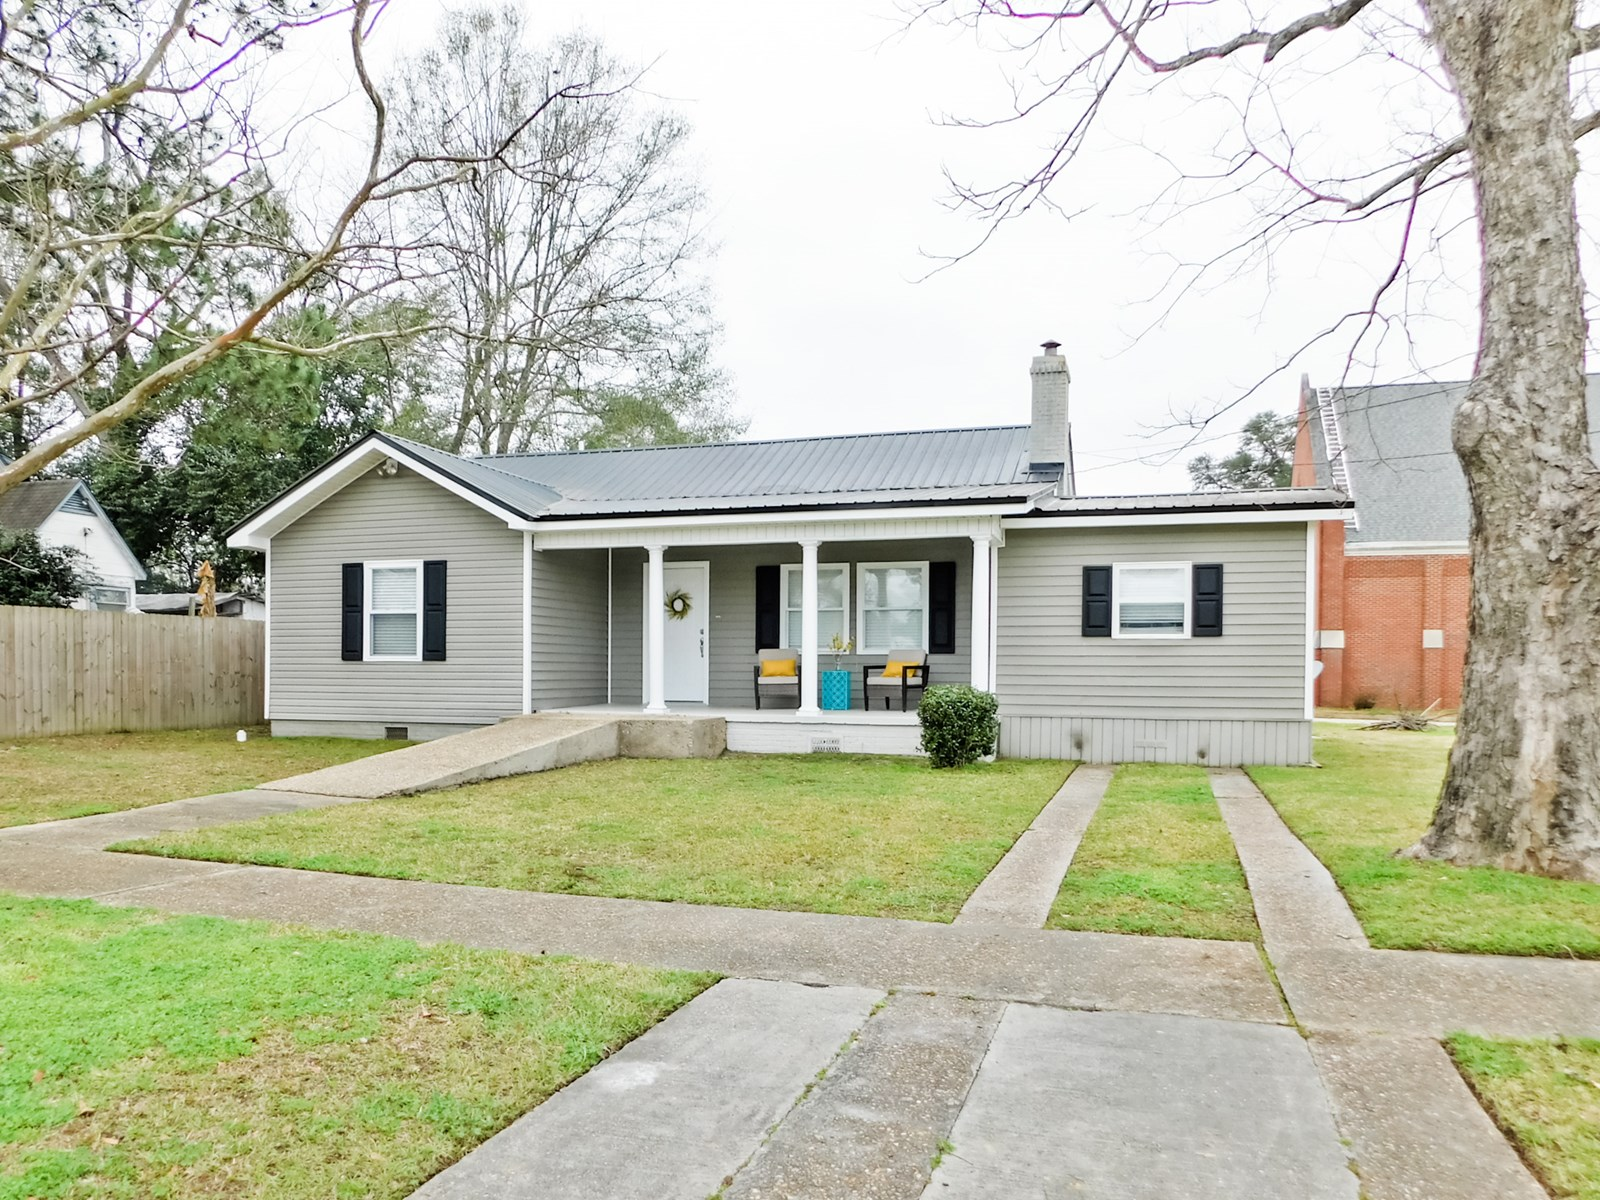 3 bed / 2 bath Home in Town for Sale Geneva, Alabama